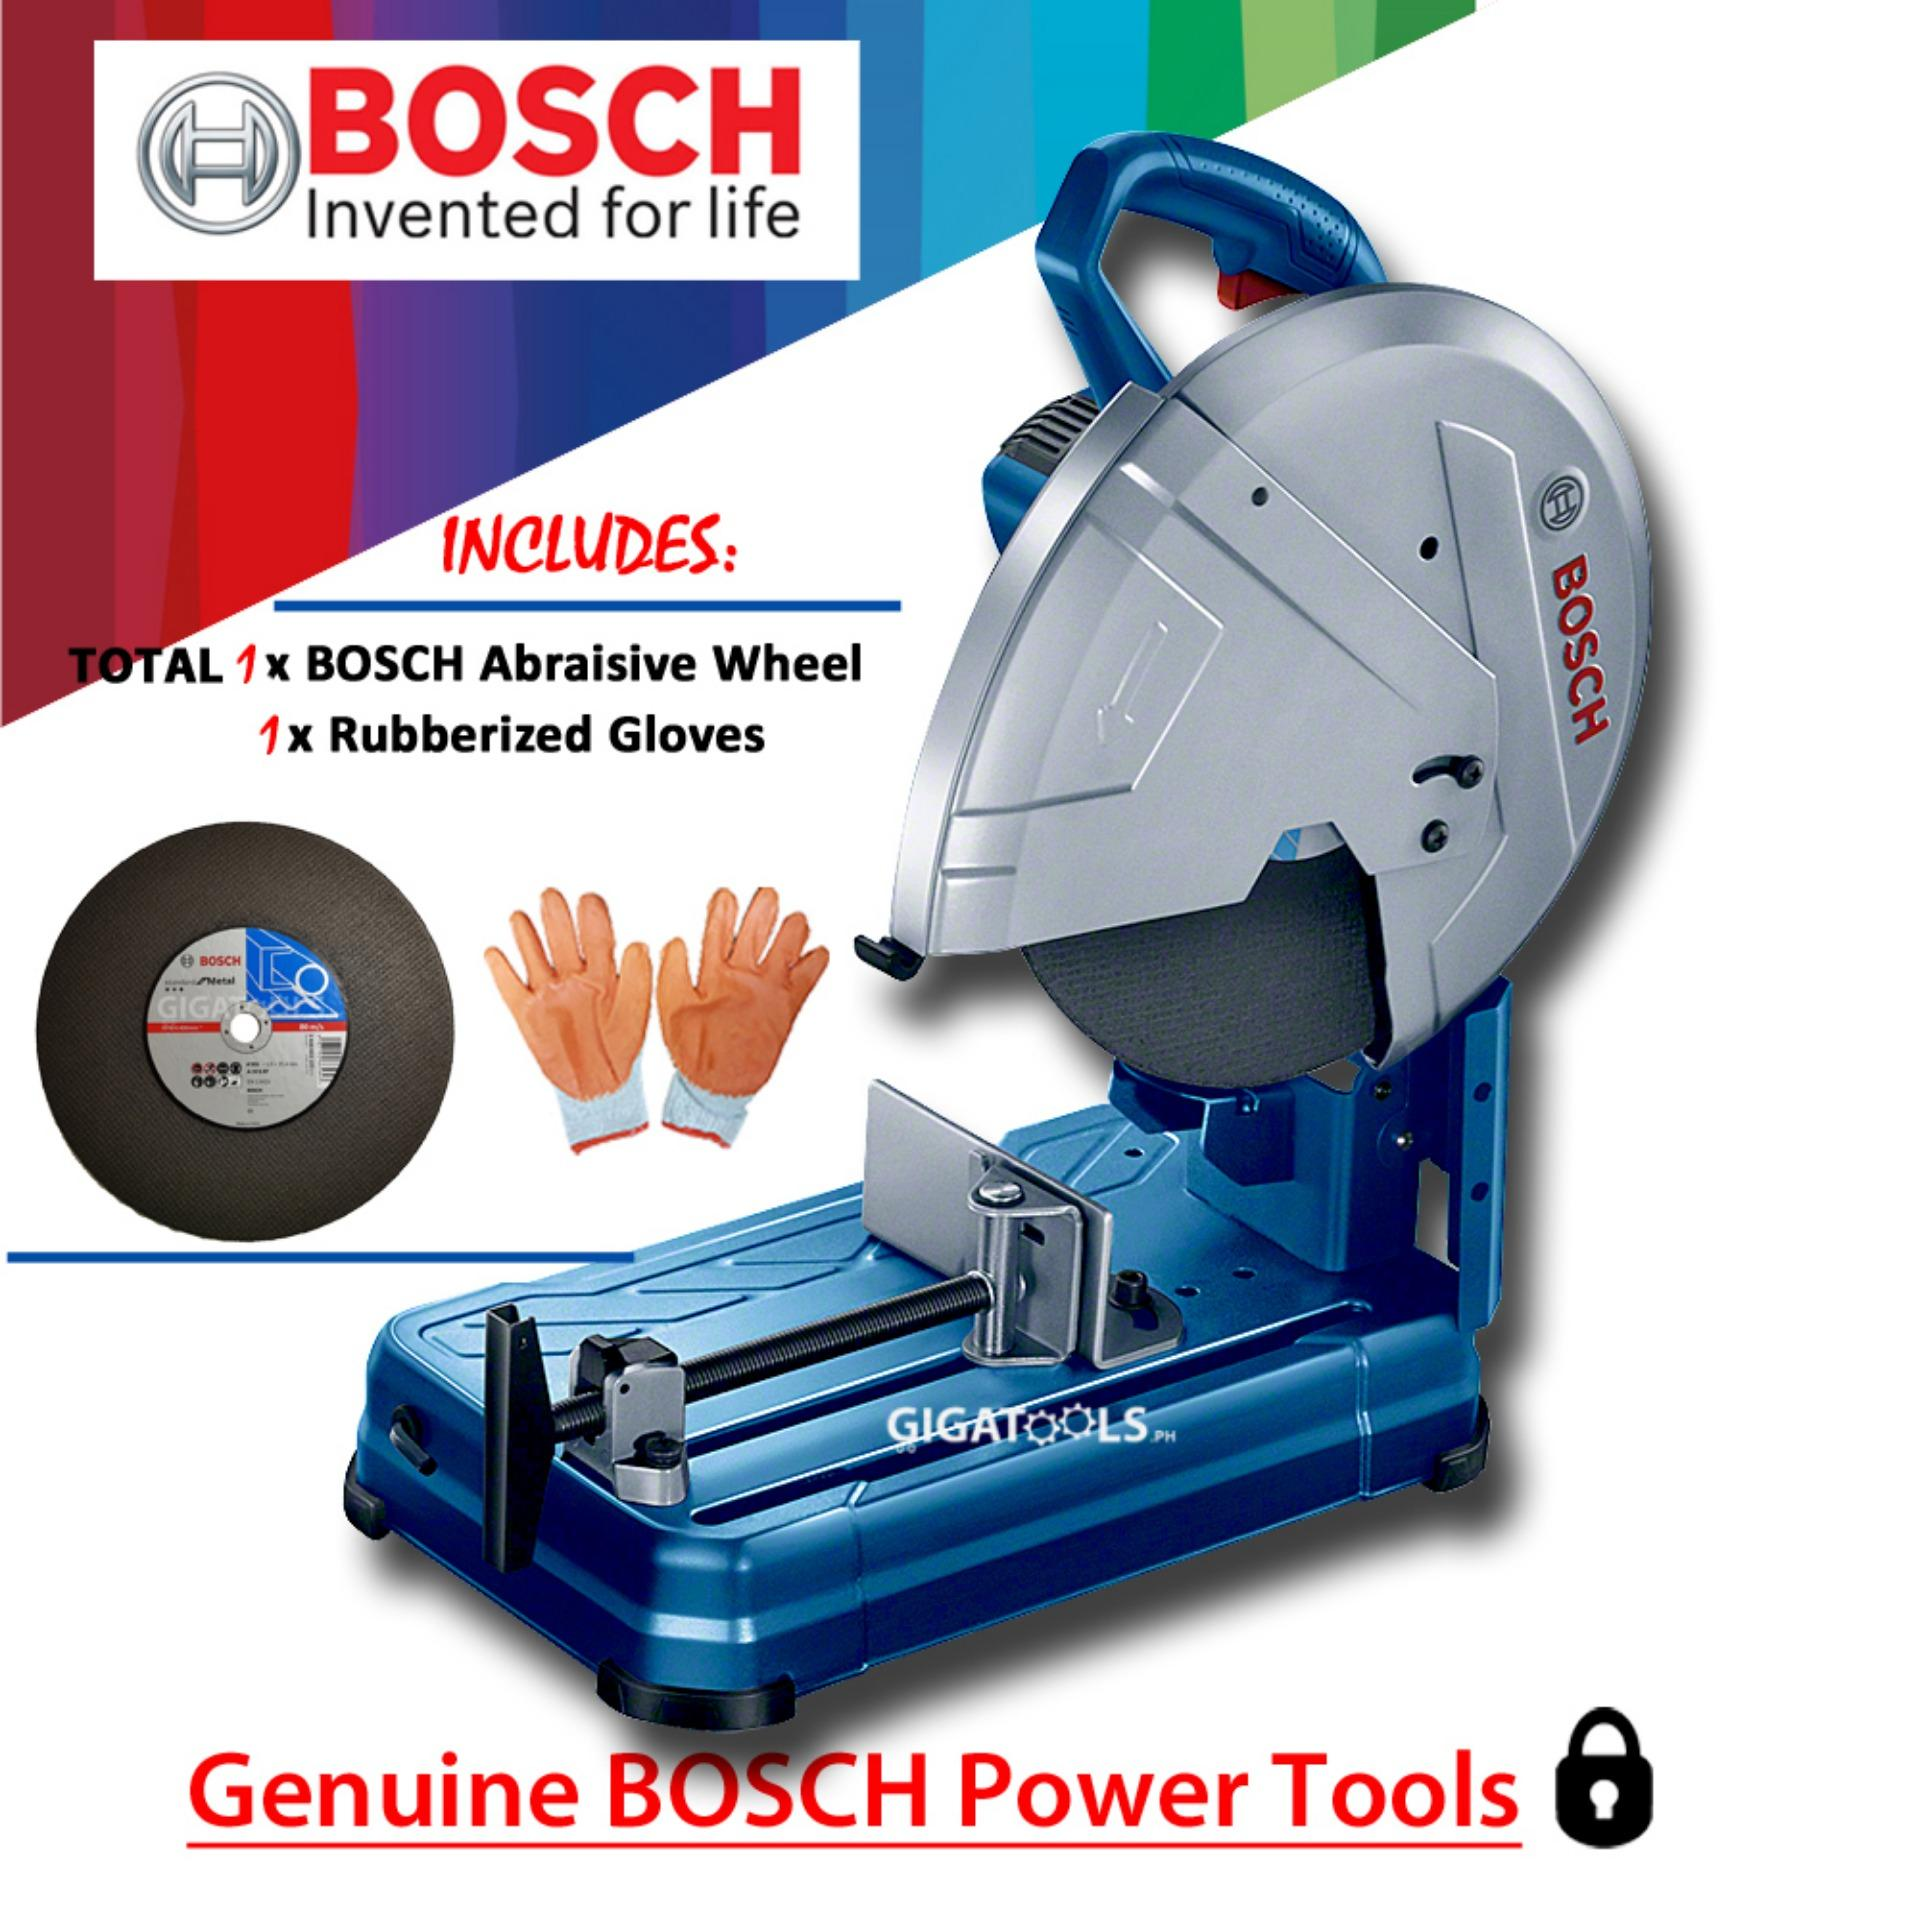 Power Saw for sale - Electric Saw prices, brands & review in ...